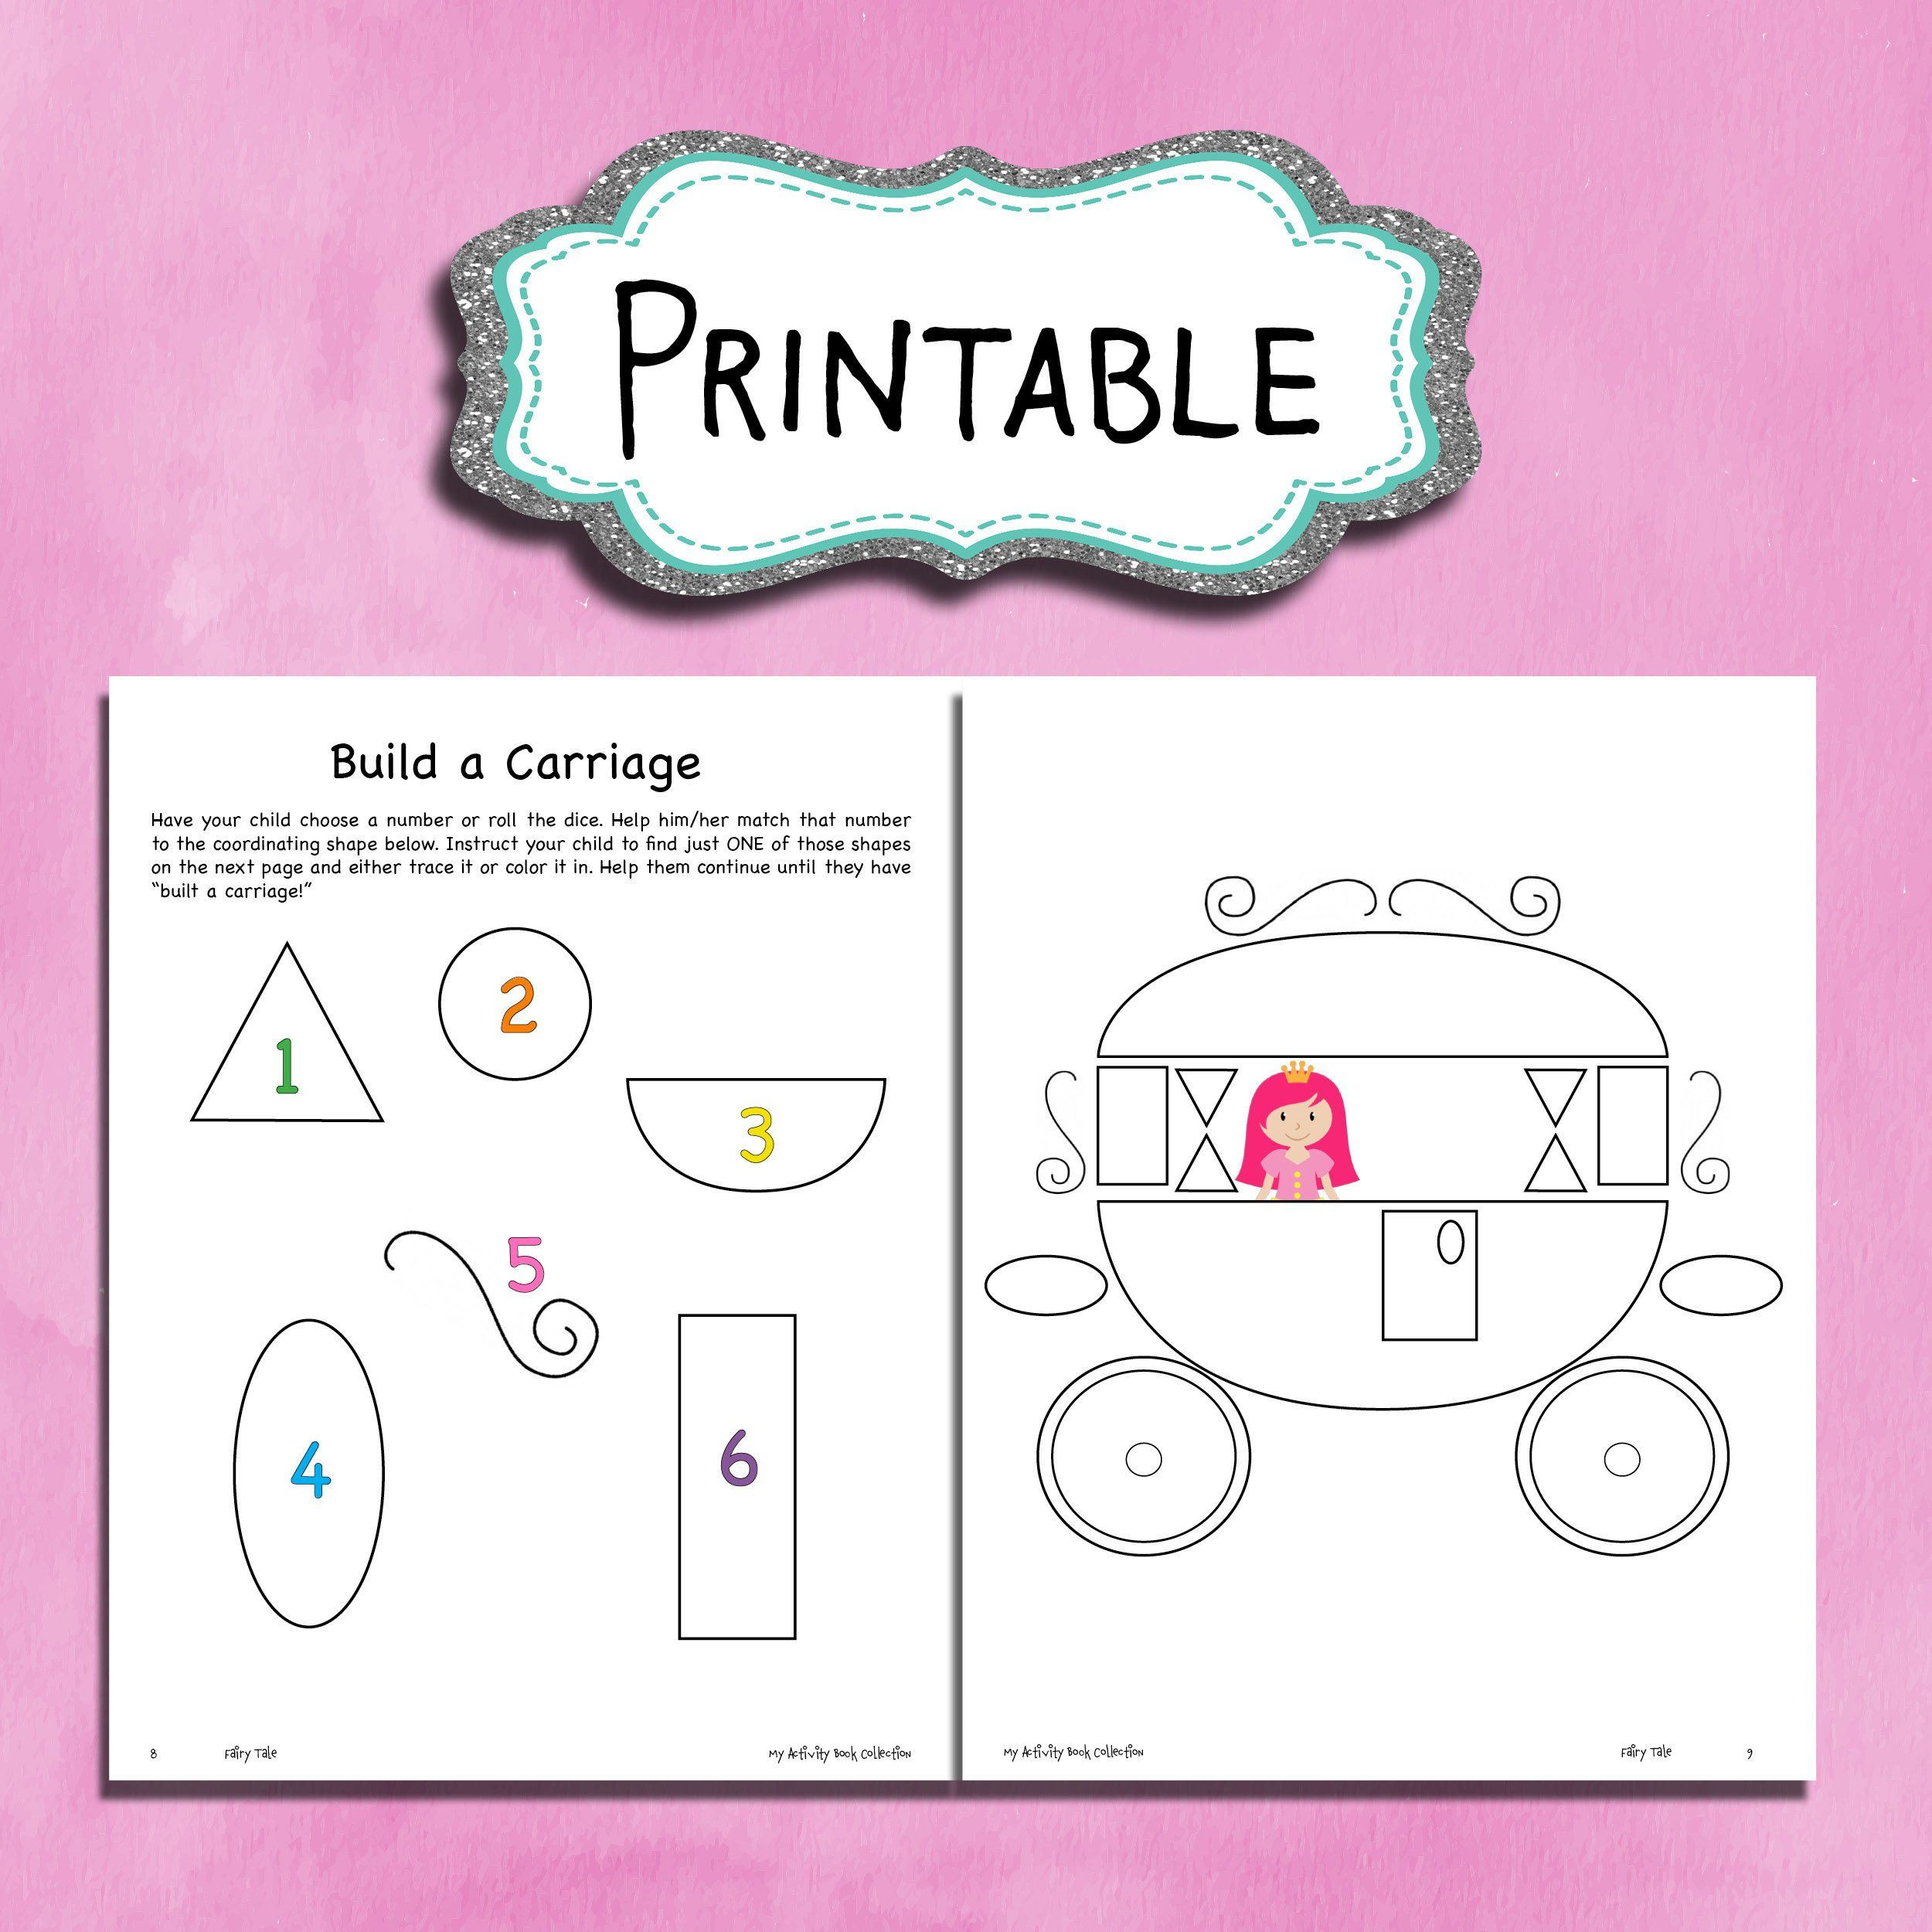 Build A Carriage Printable Worksheet For Kids Princess